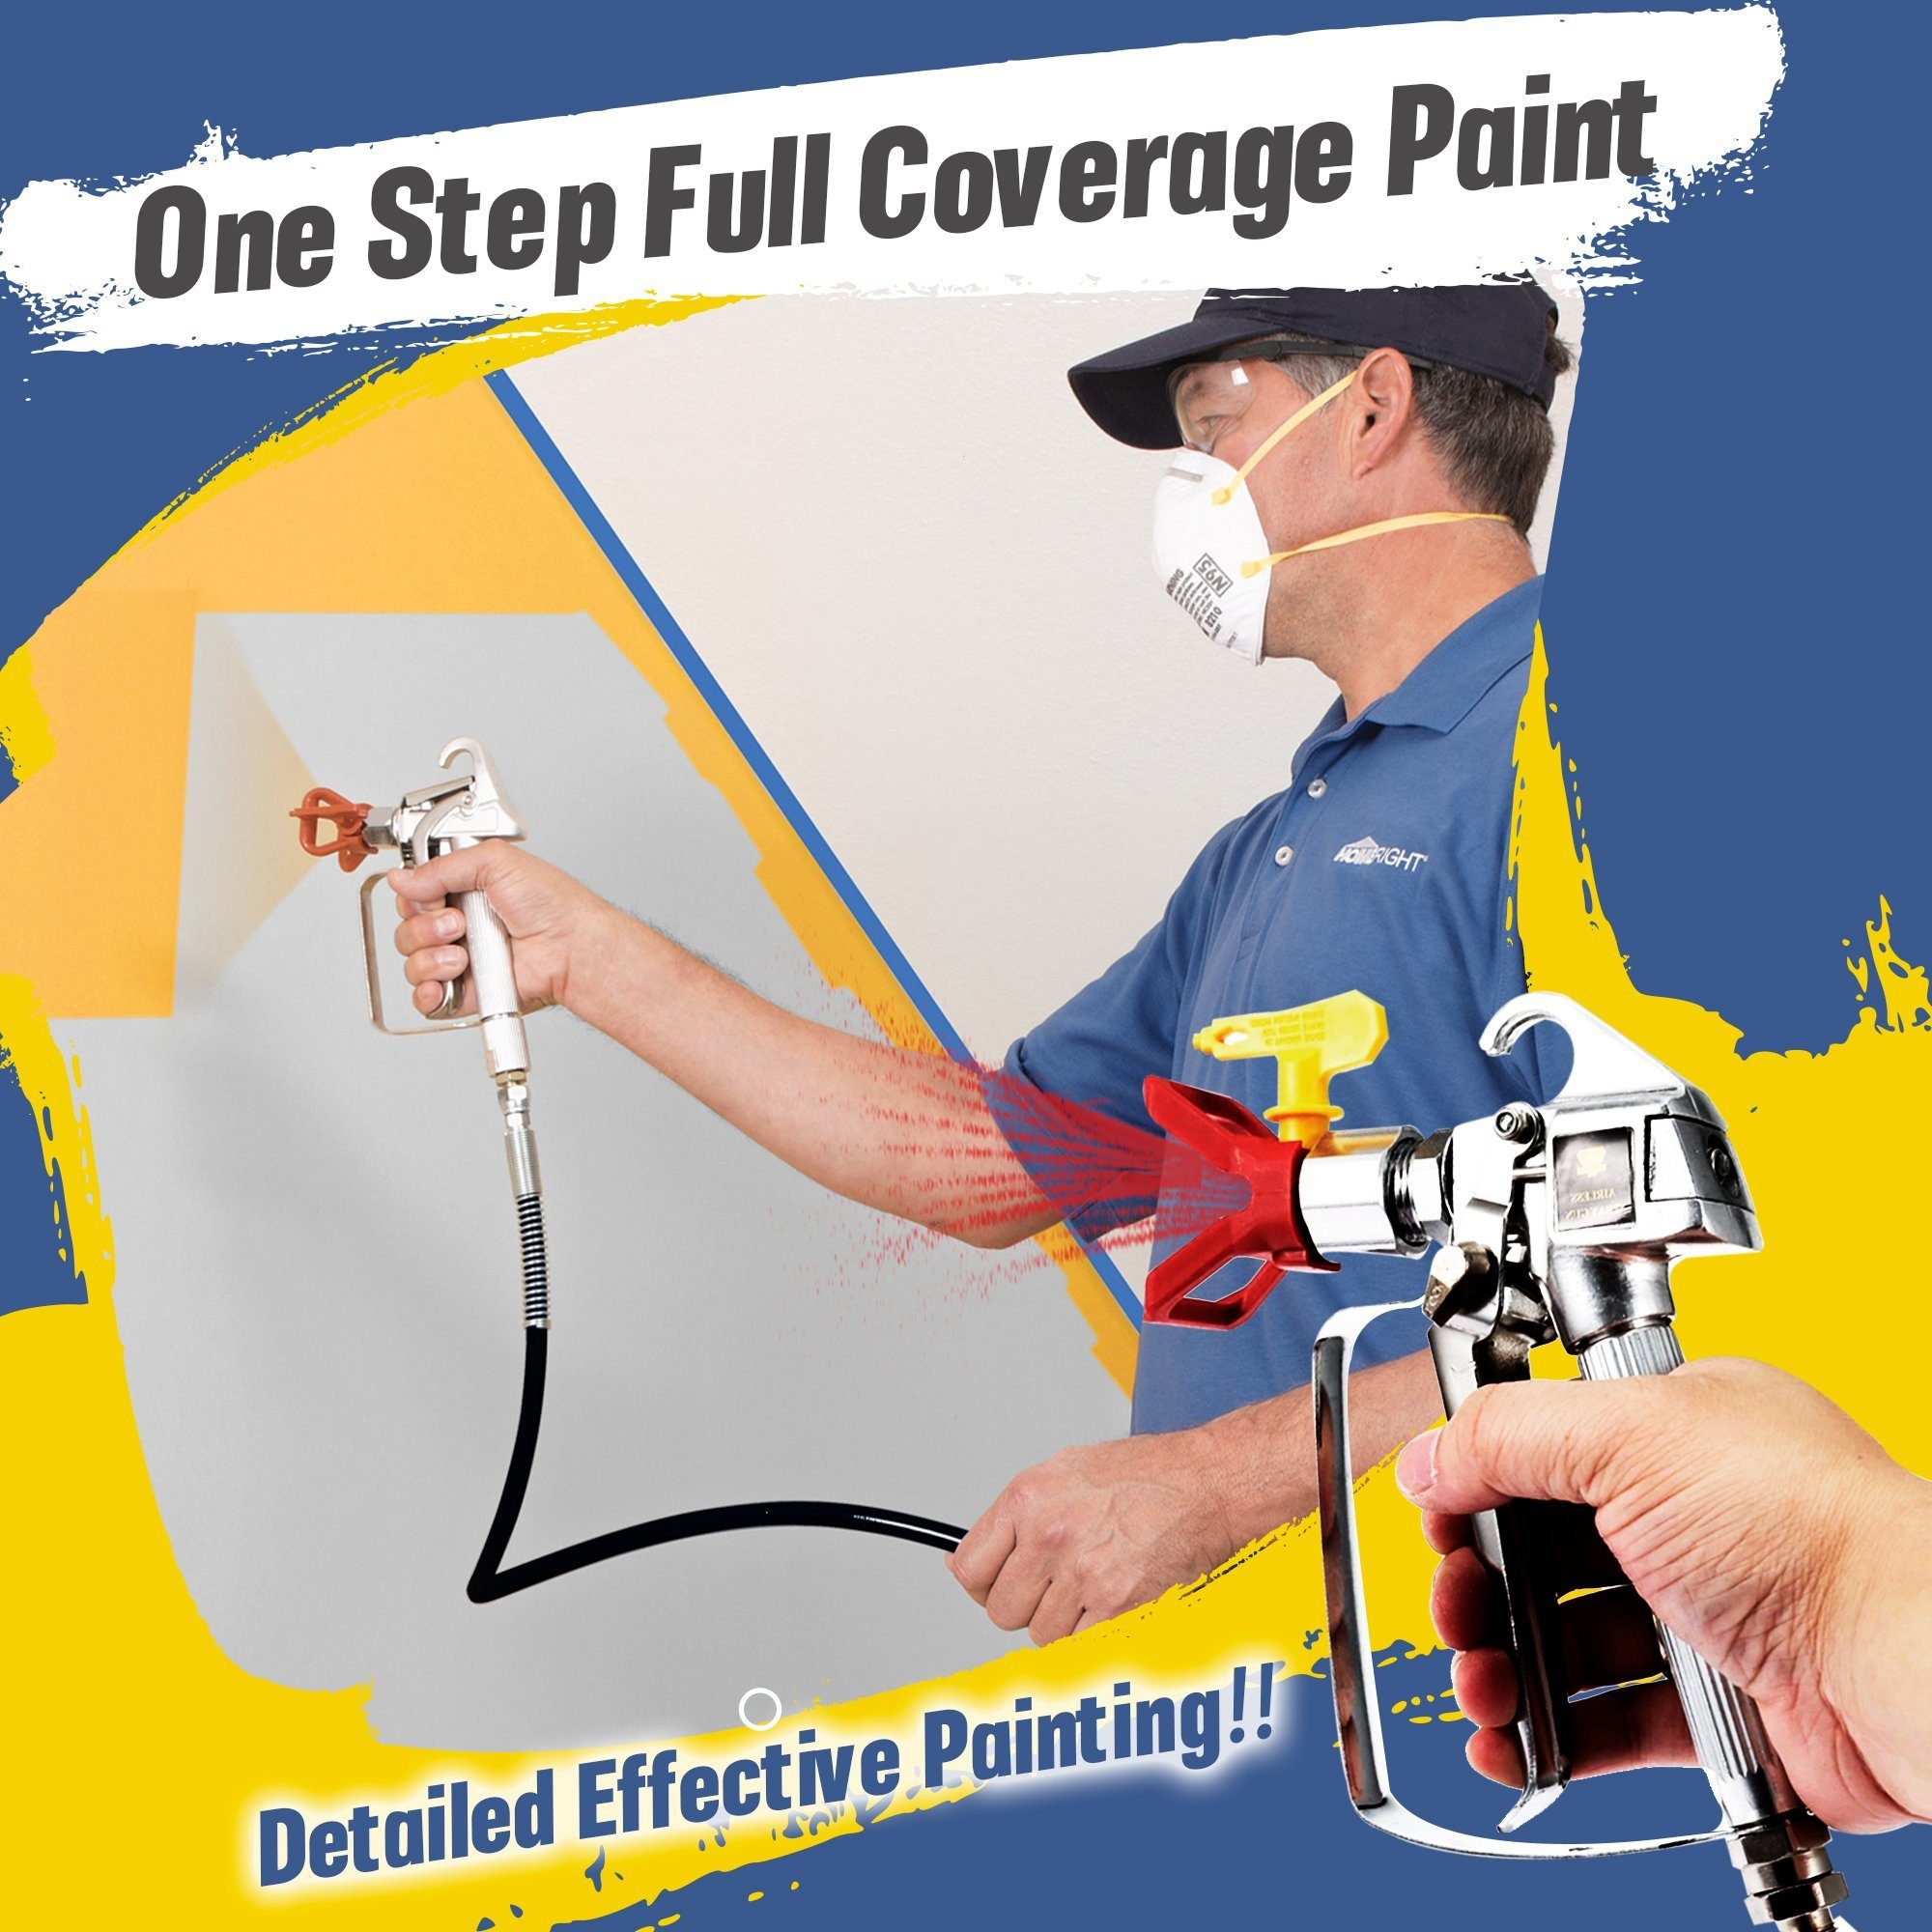 Easy Paint Sprayer Tool